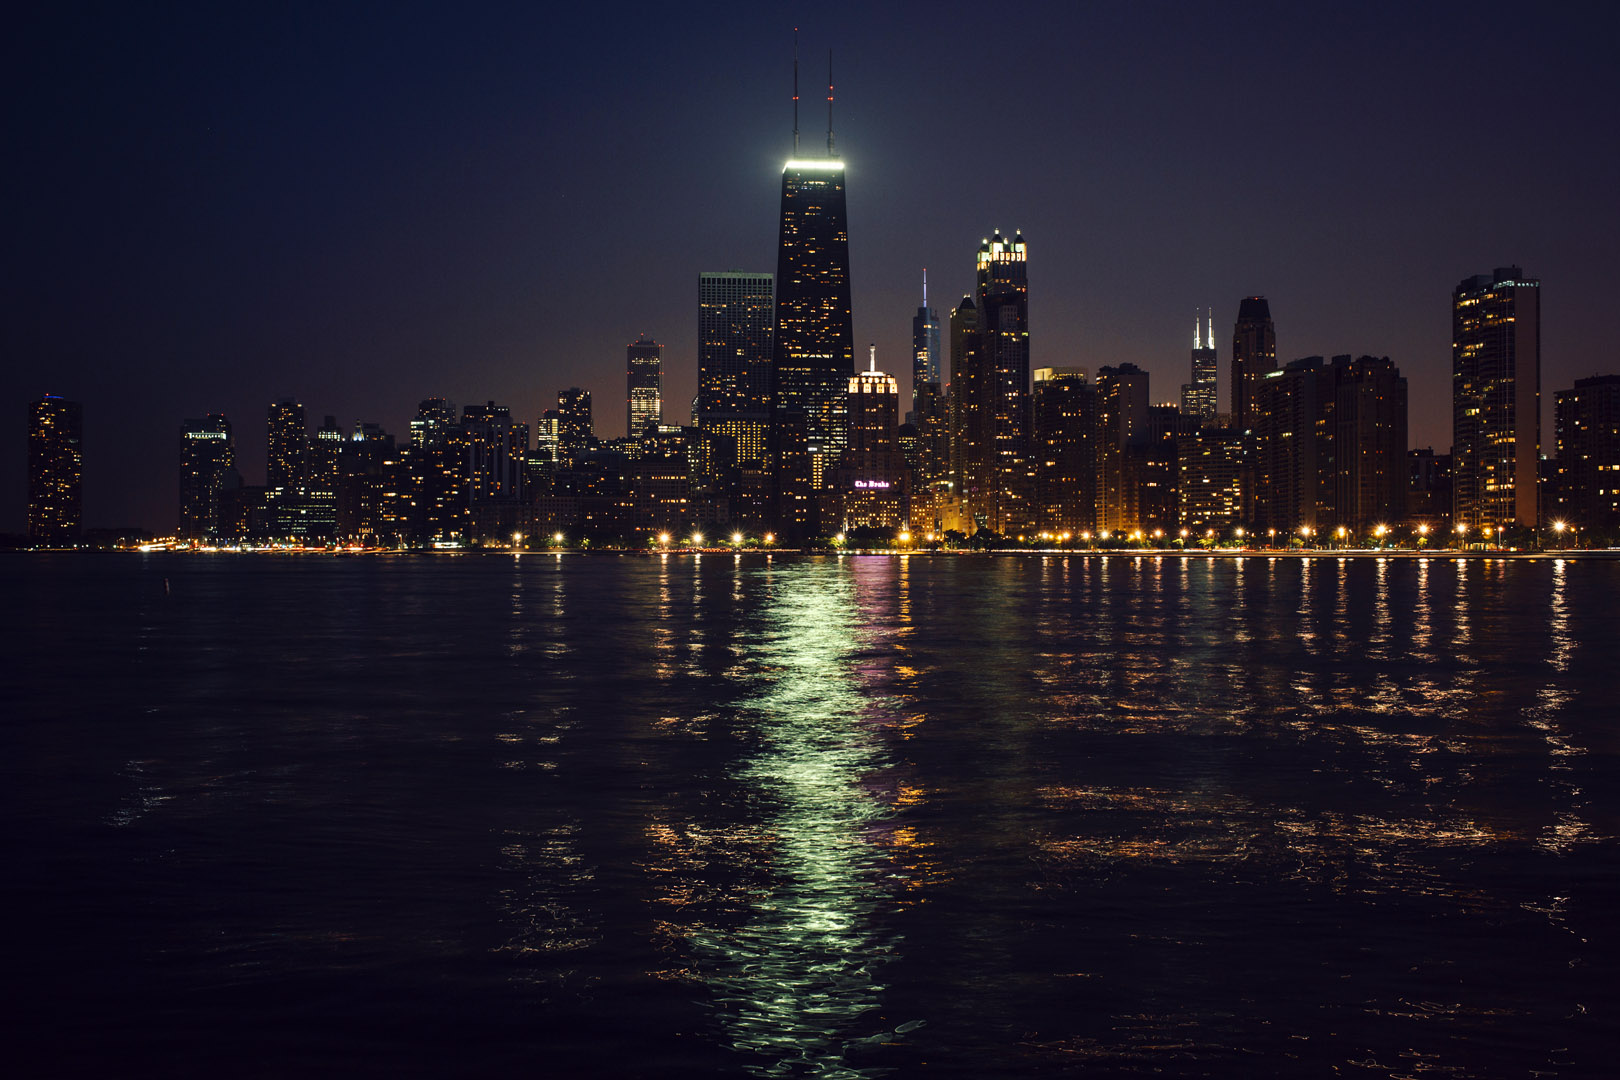 ChooseChicago_2014_08_18_2868_edit.jpg